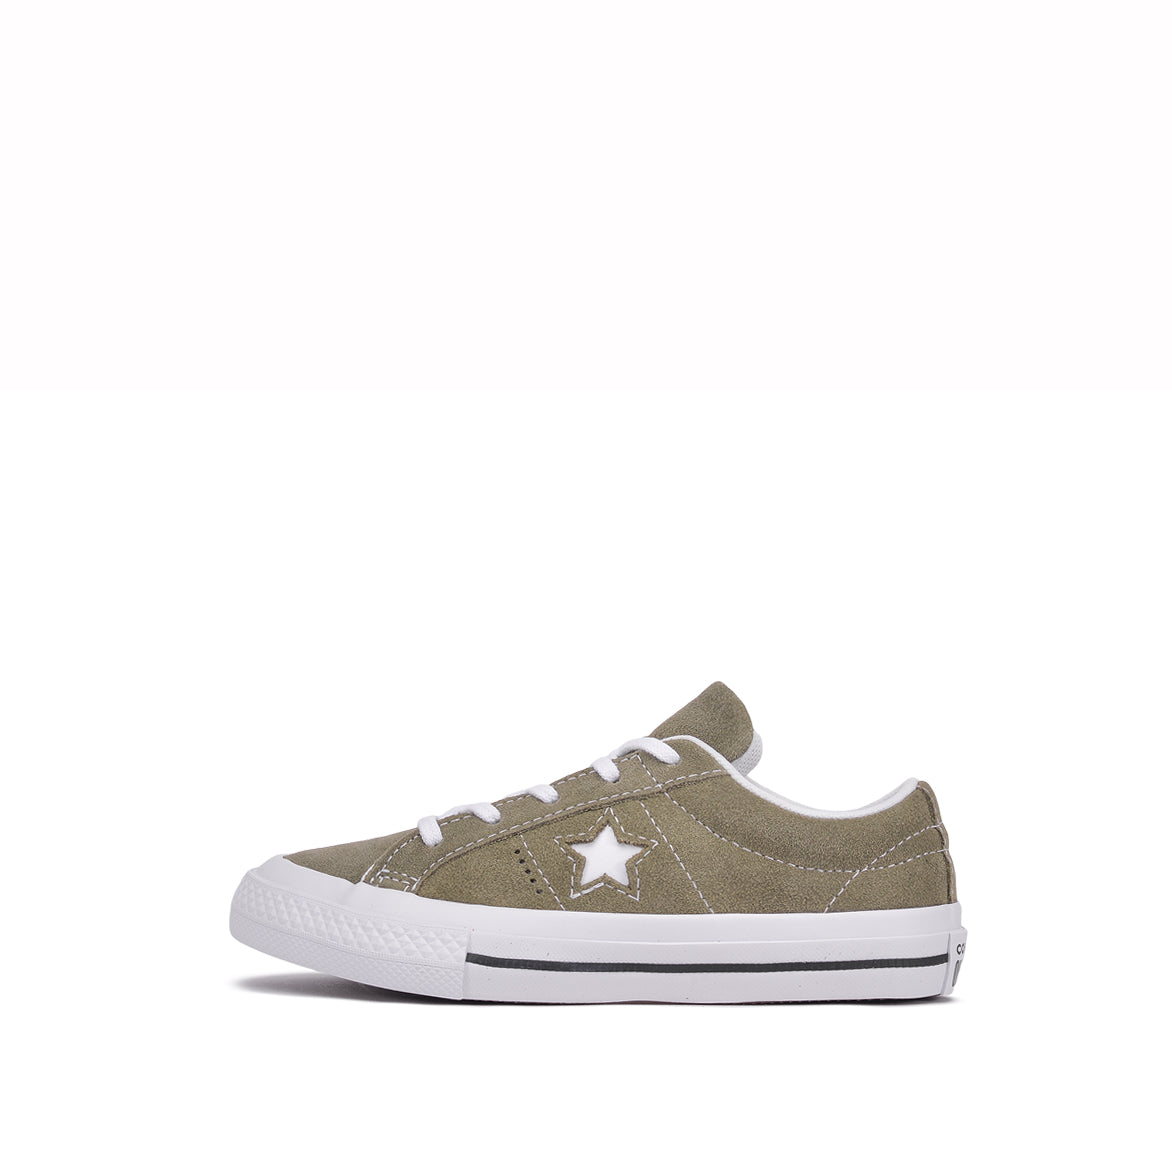 ONE STAR OX (YOUTH) - FIELD SURPLUS